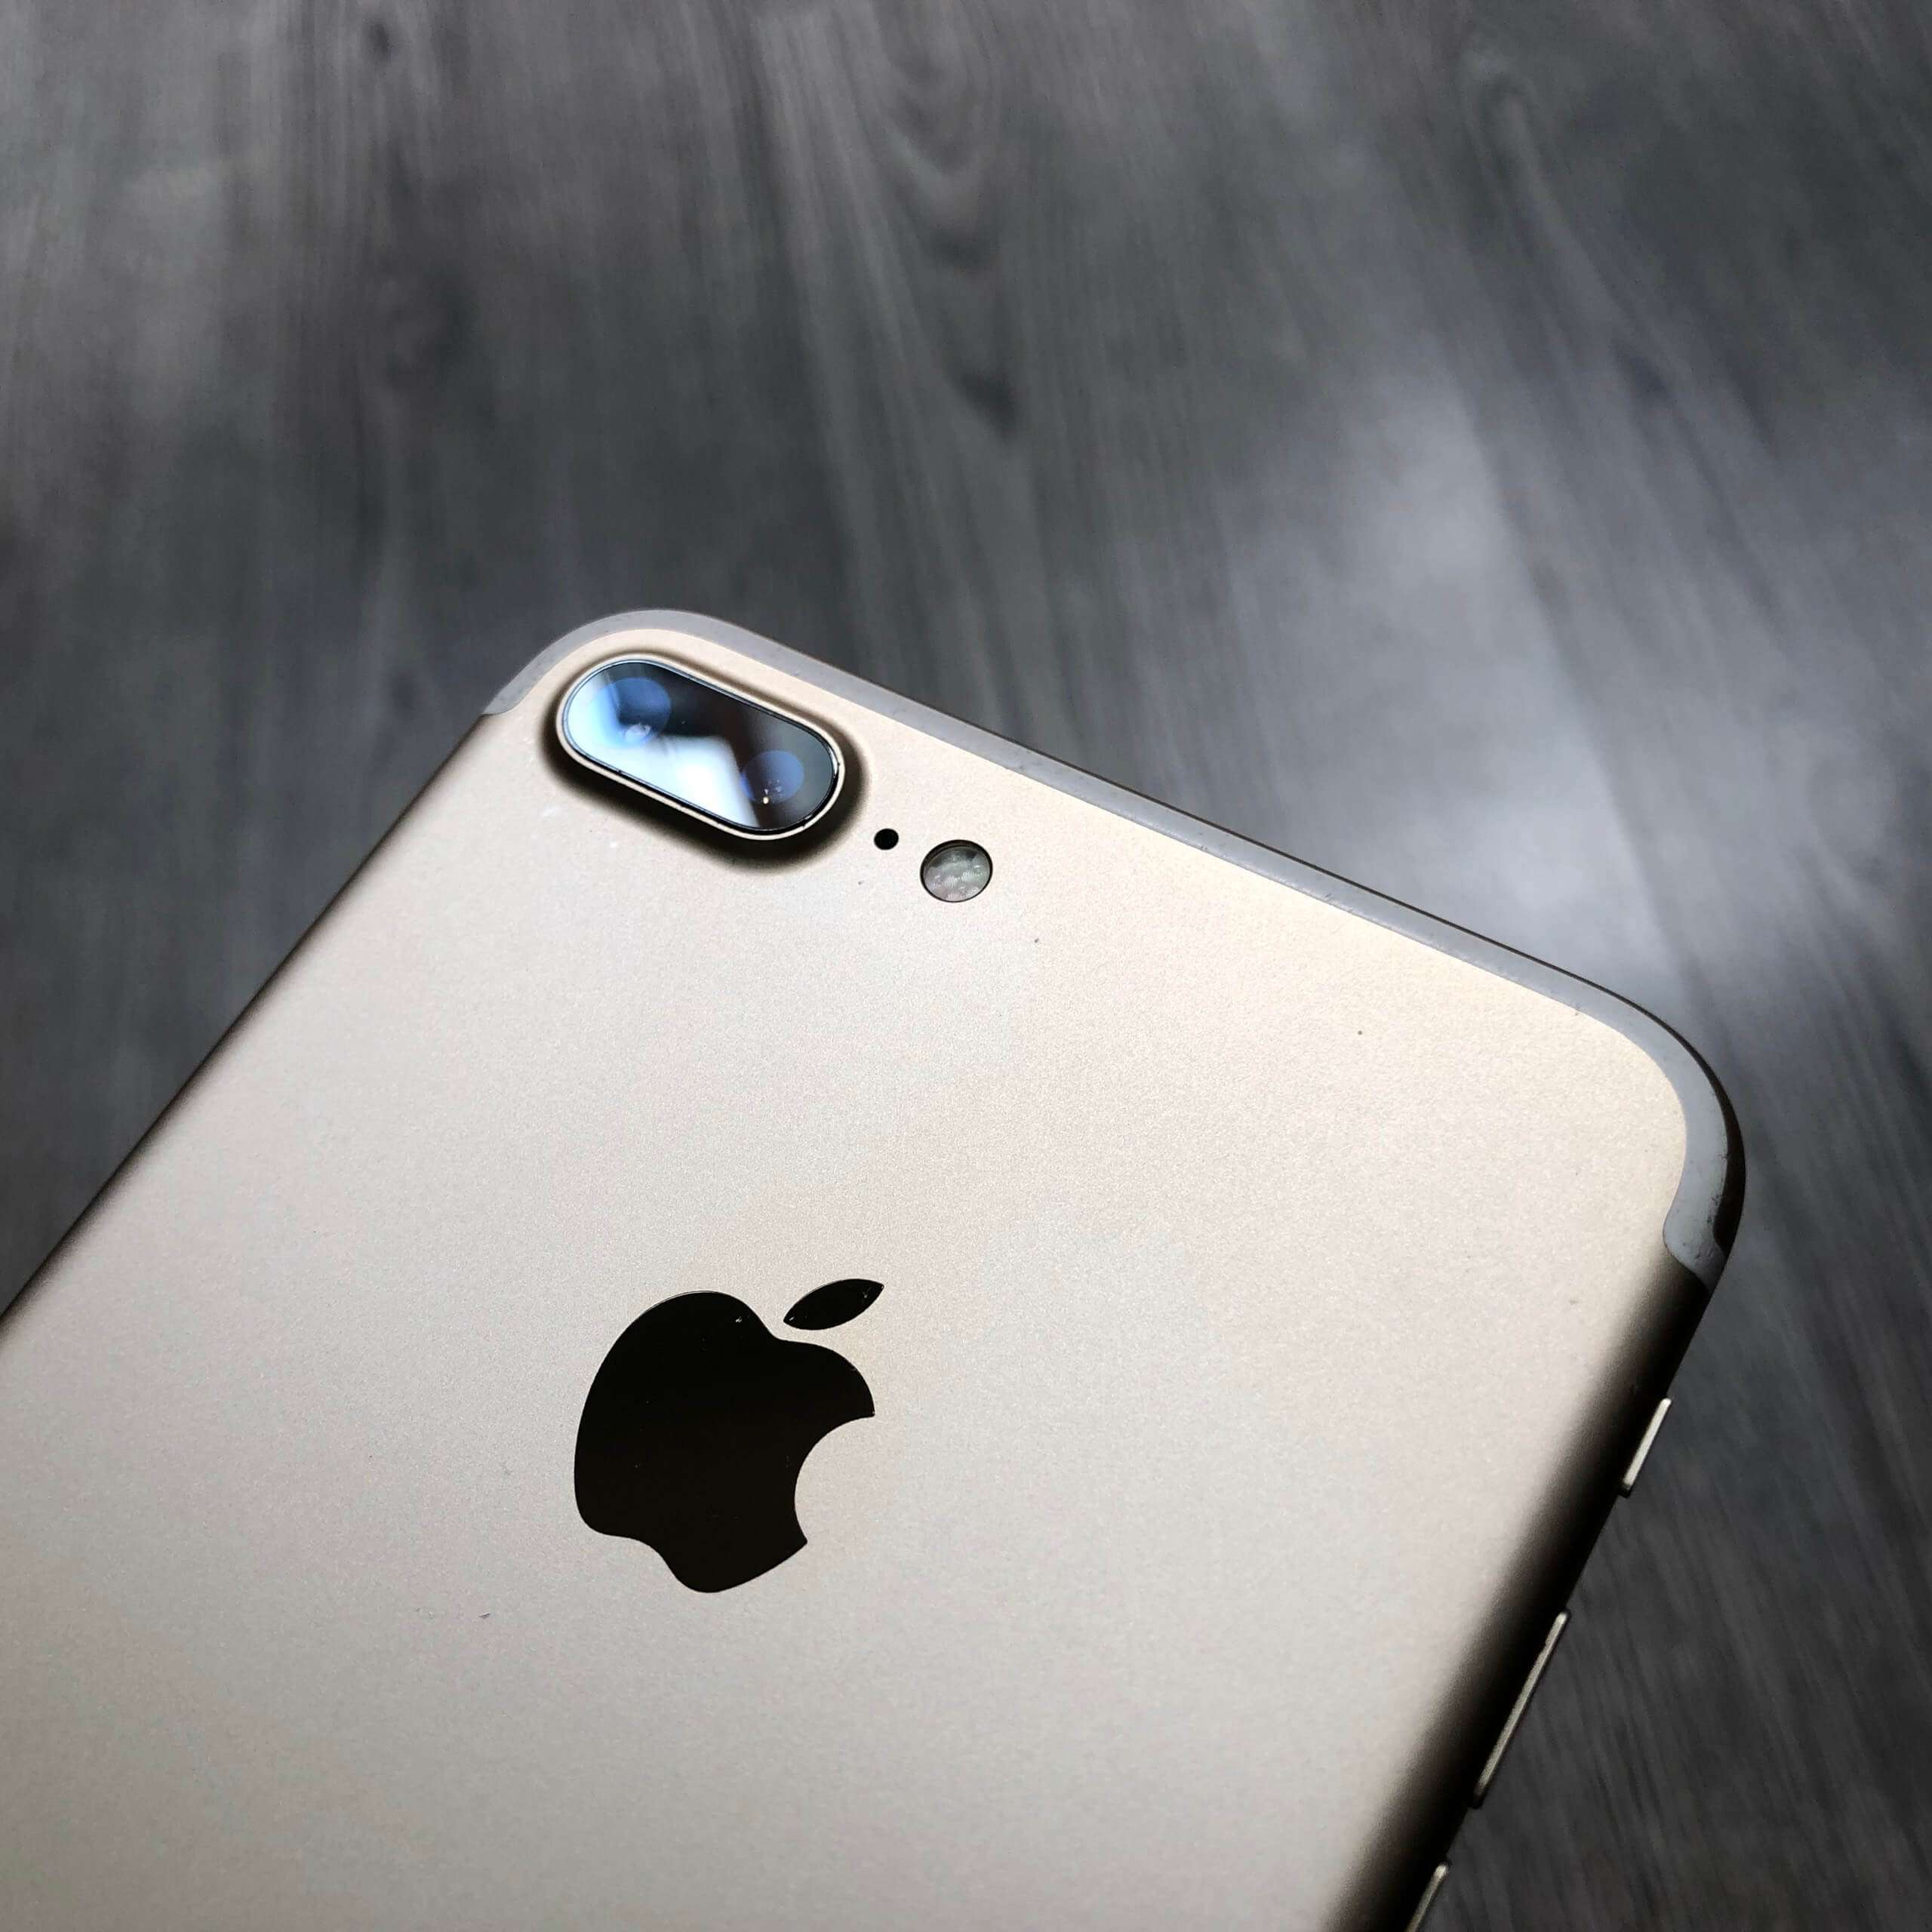 Camera iPhone 7 Plus cũ tại iphonecugiare